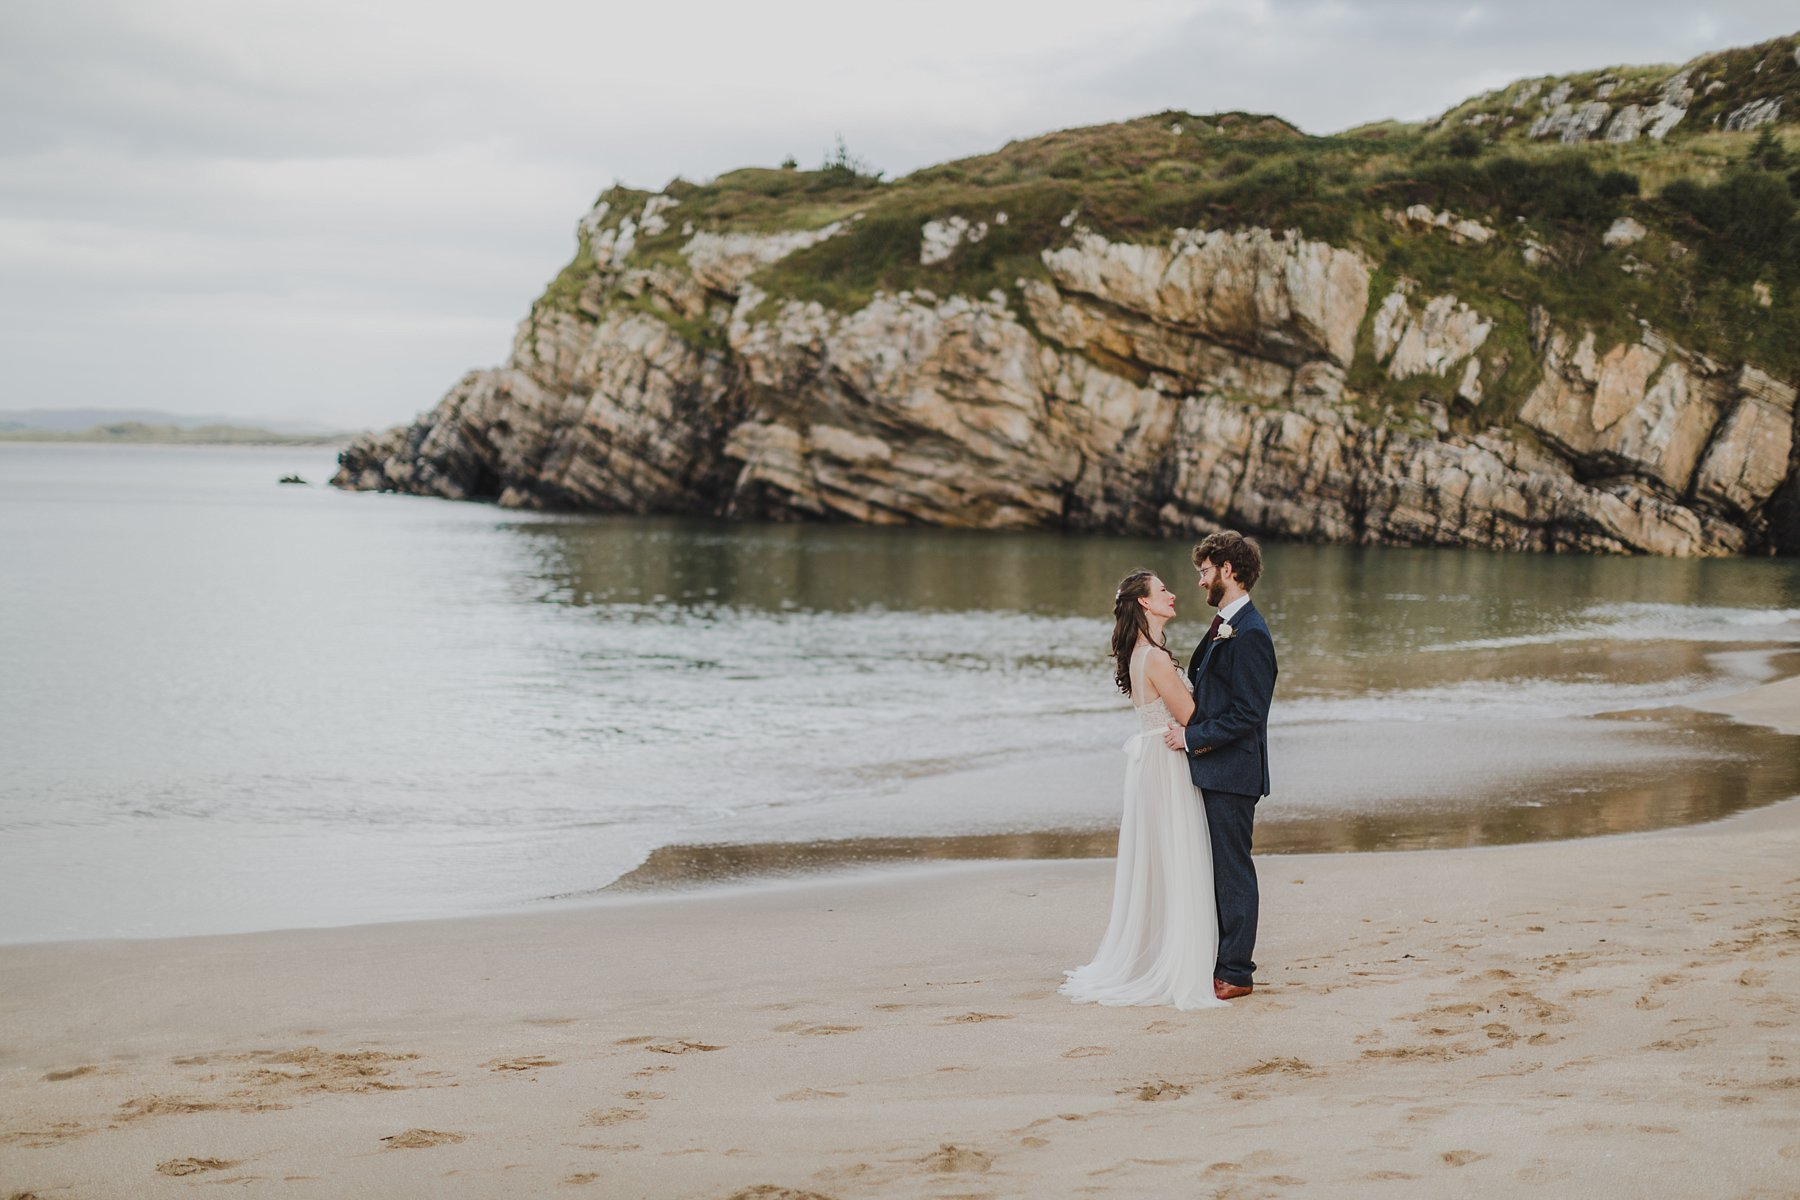 hornhead_donegak_elopement_weddings_0065